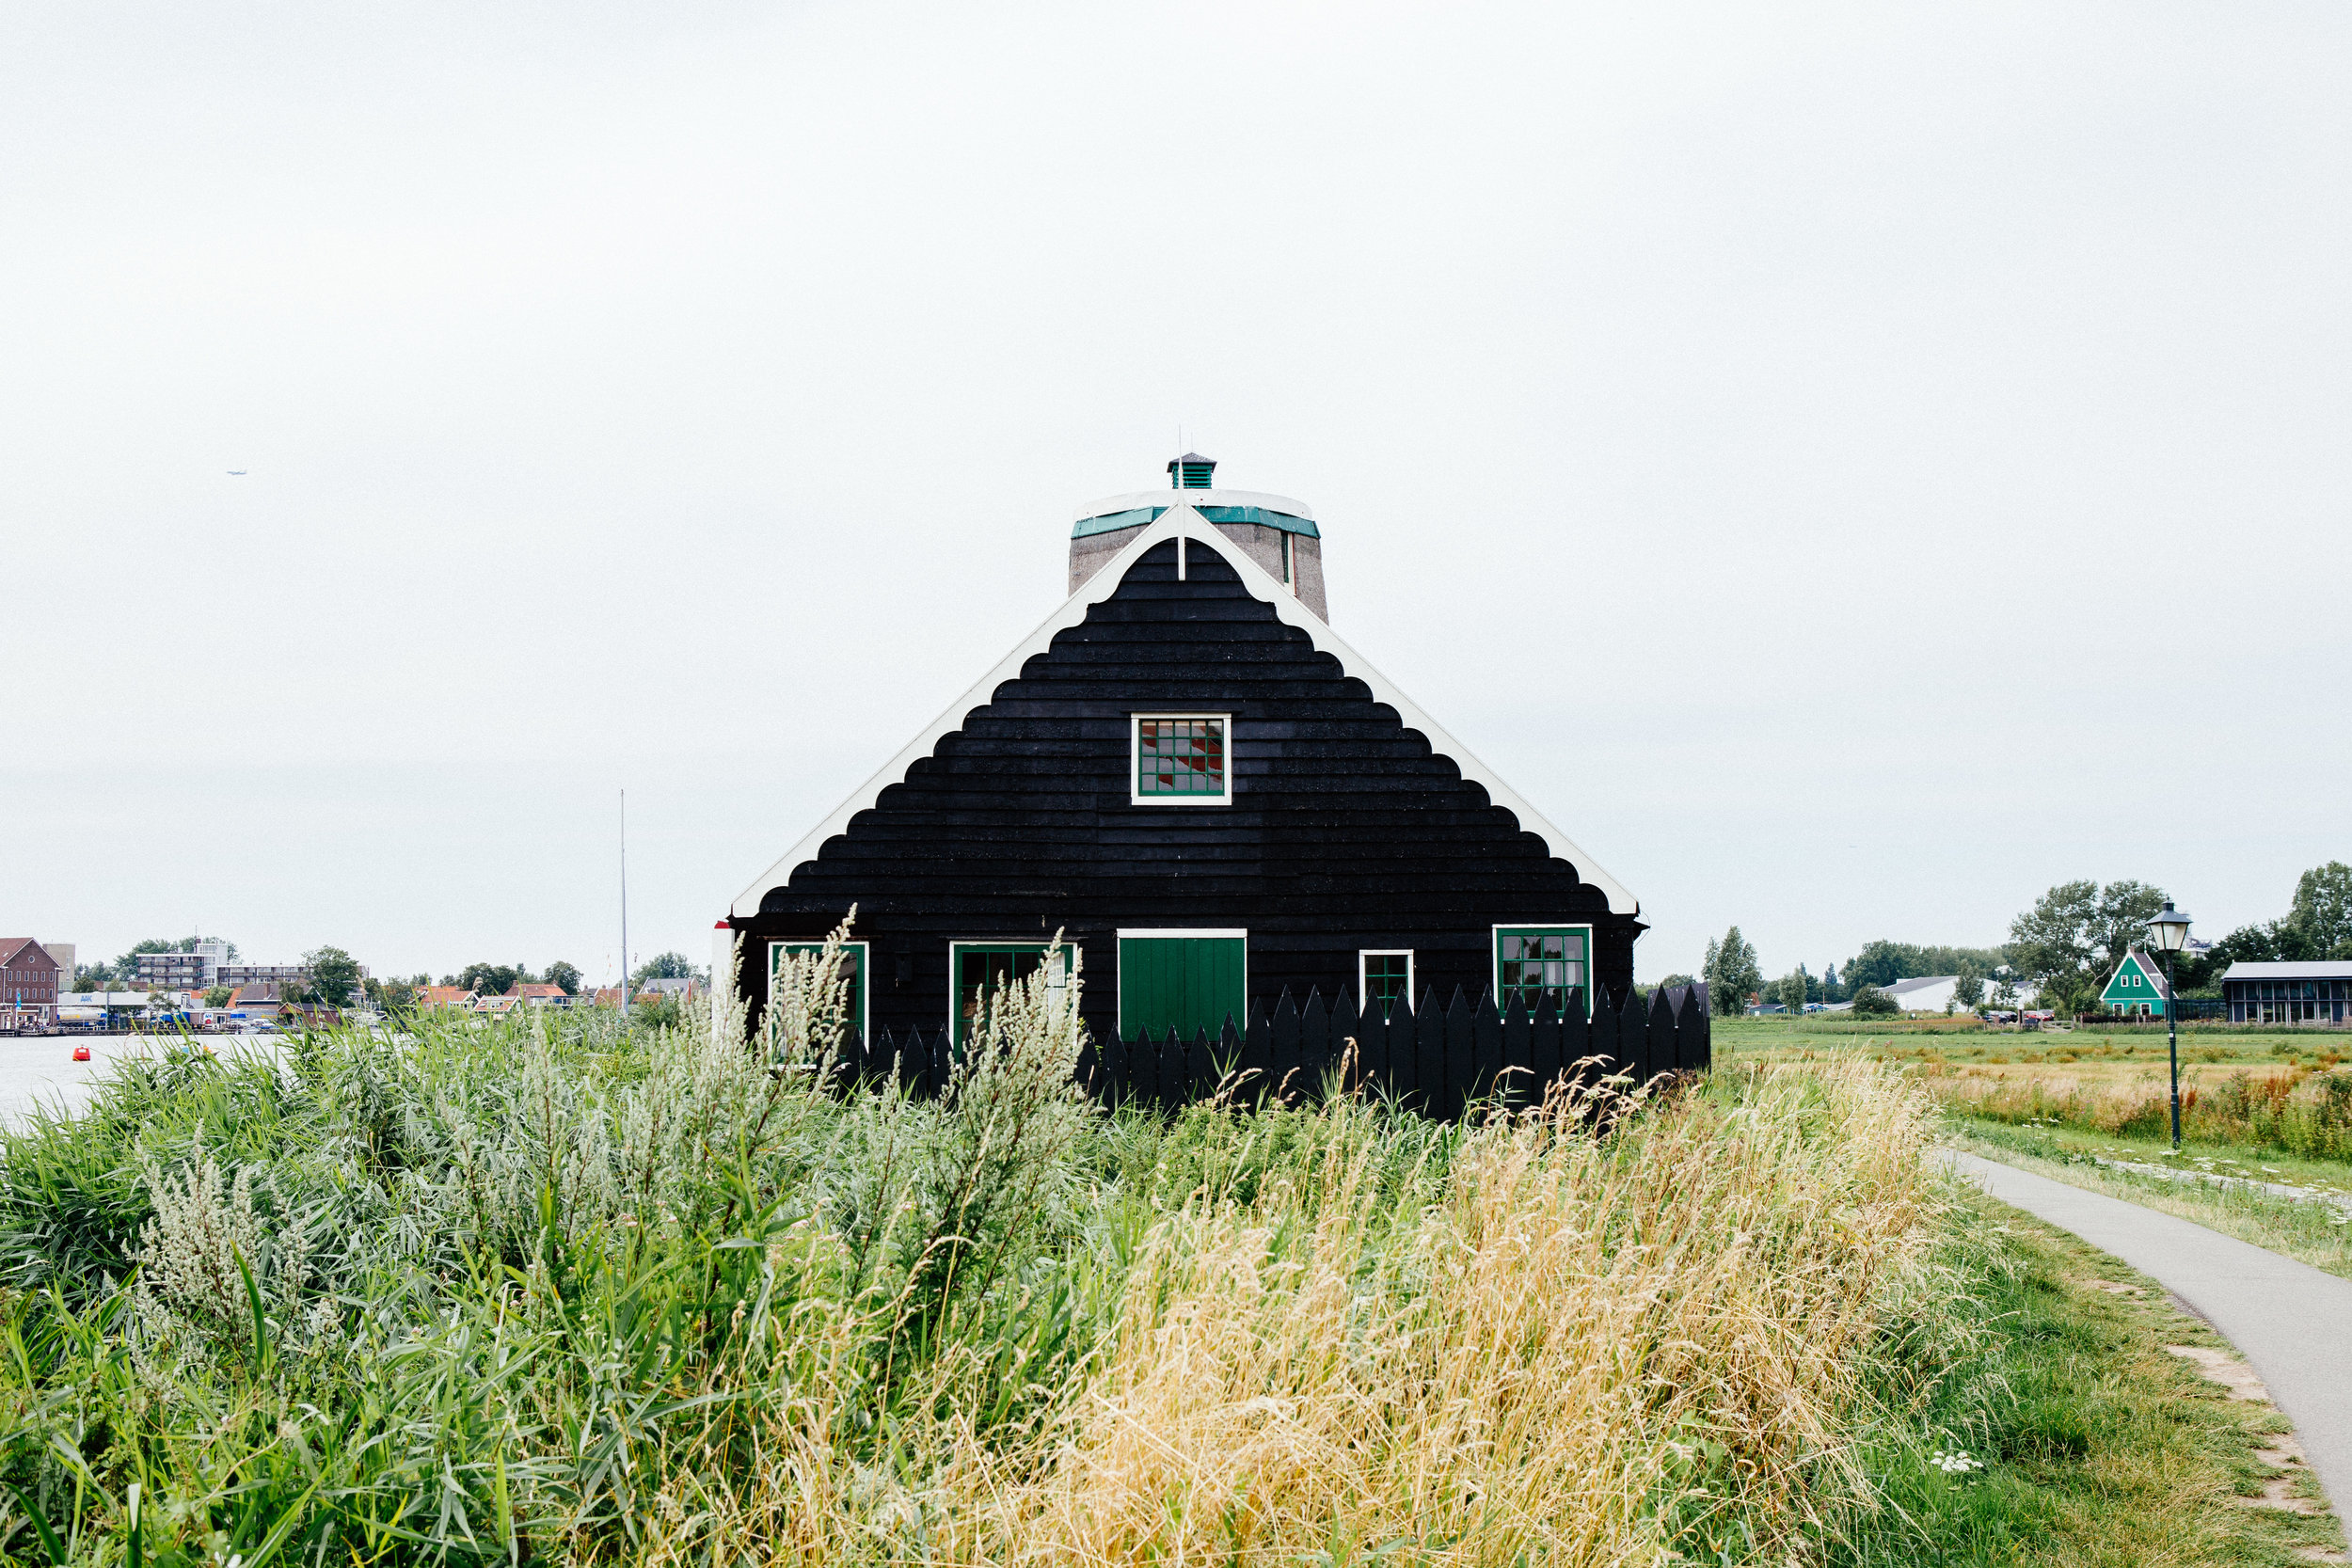 Dutch house Volendam Toronto Food Travel Photographers - Suech and Beck